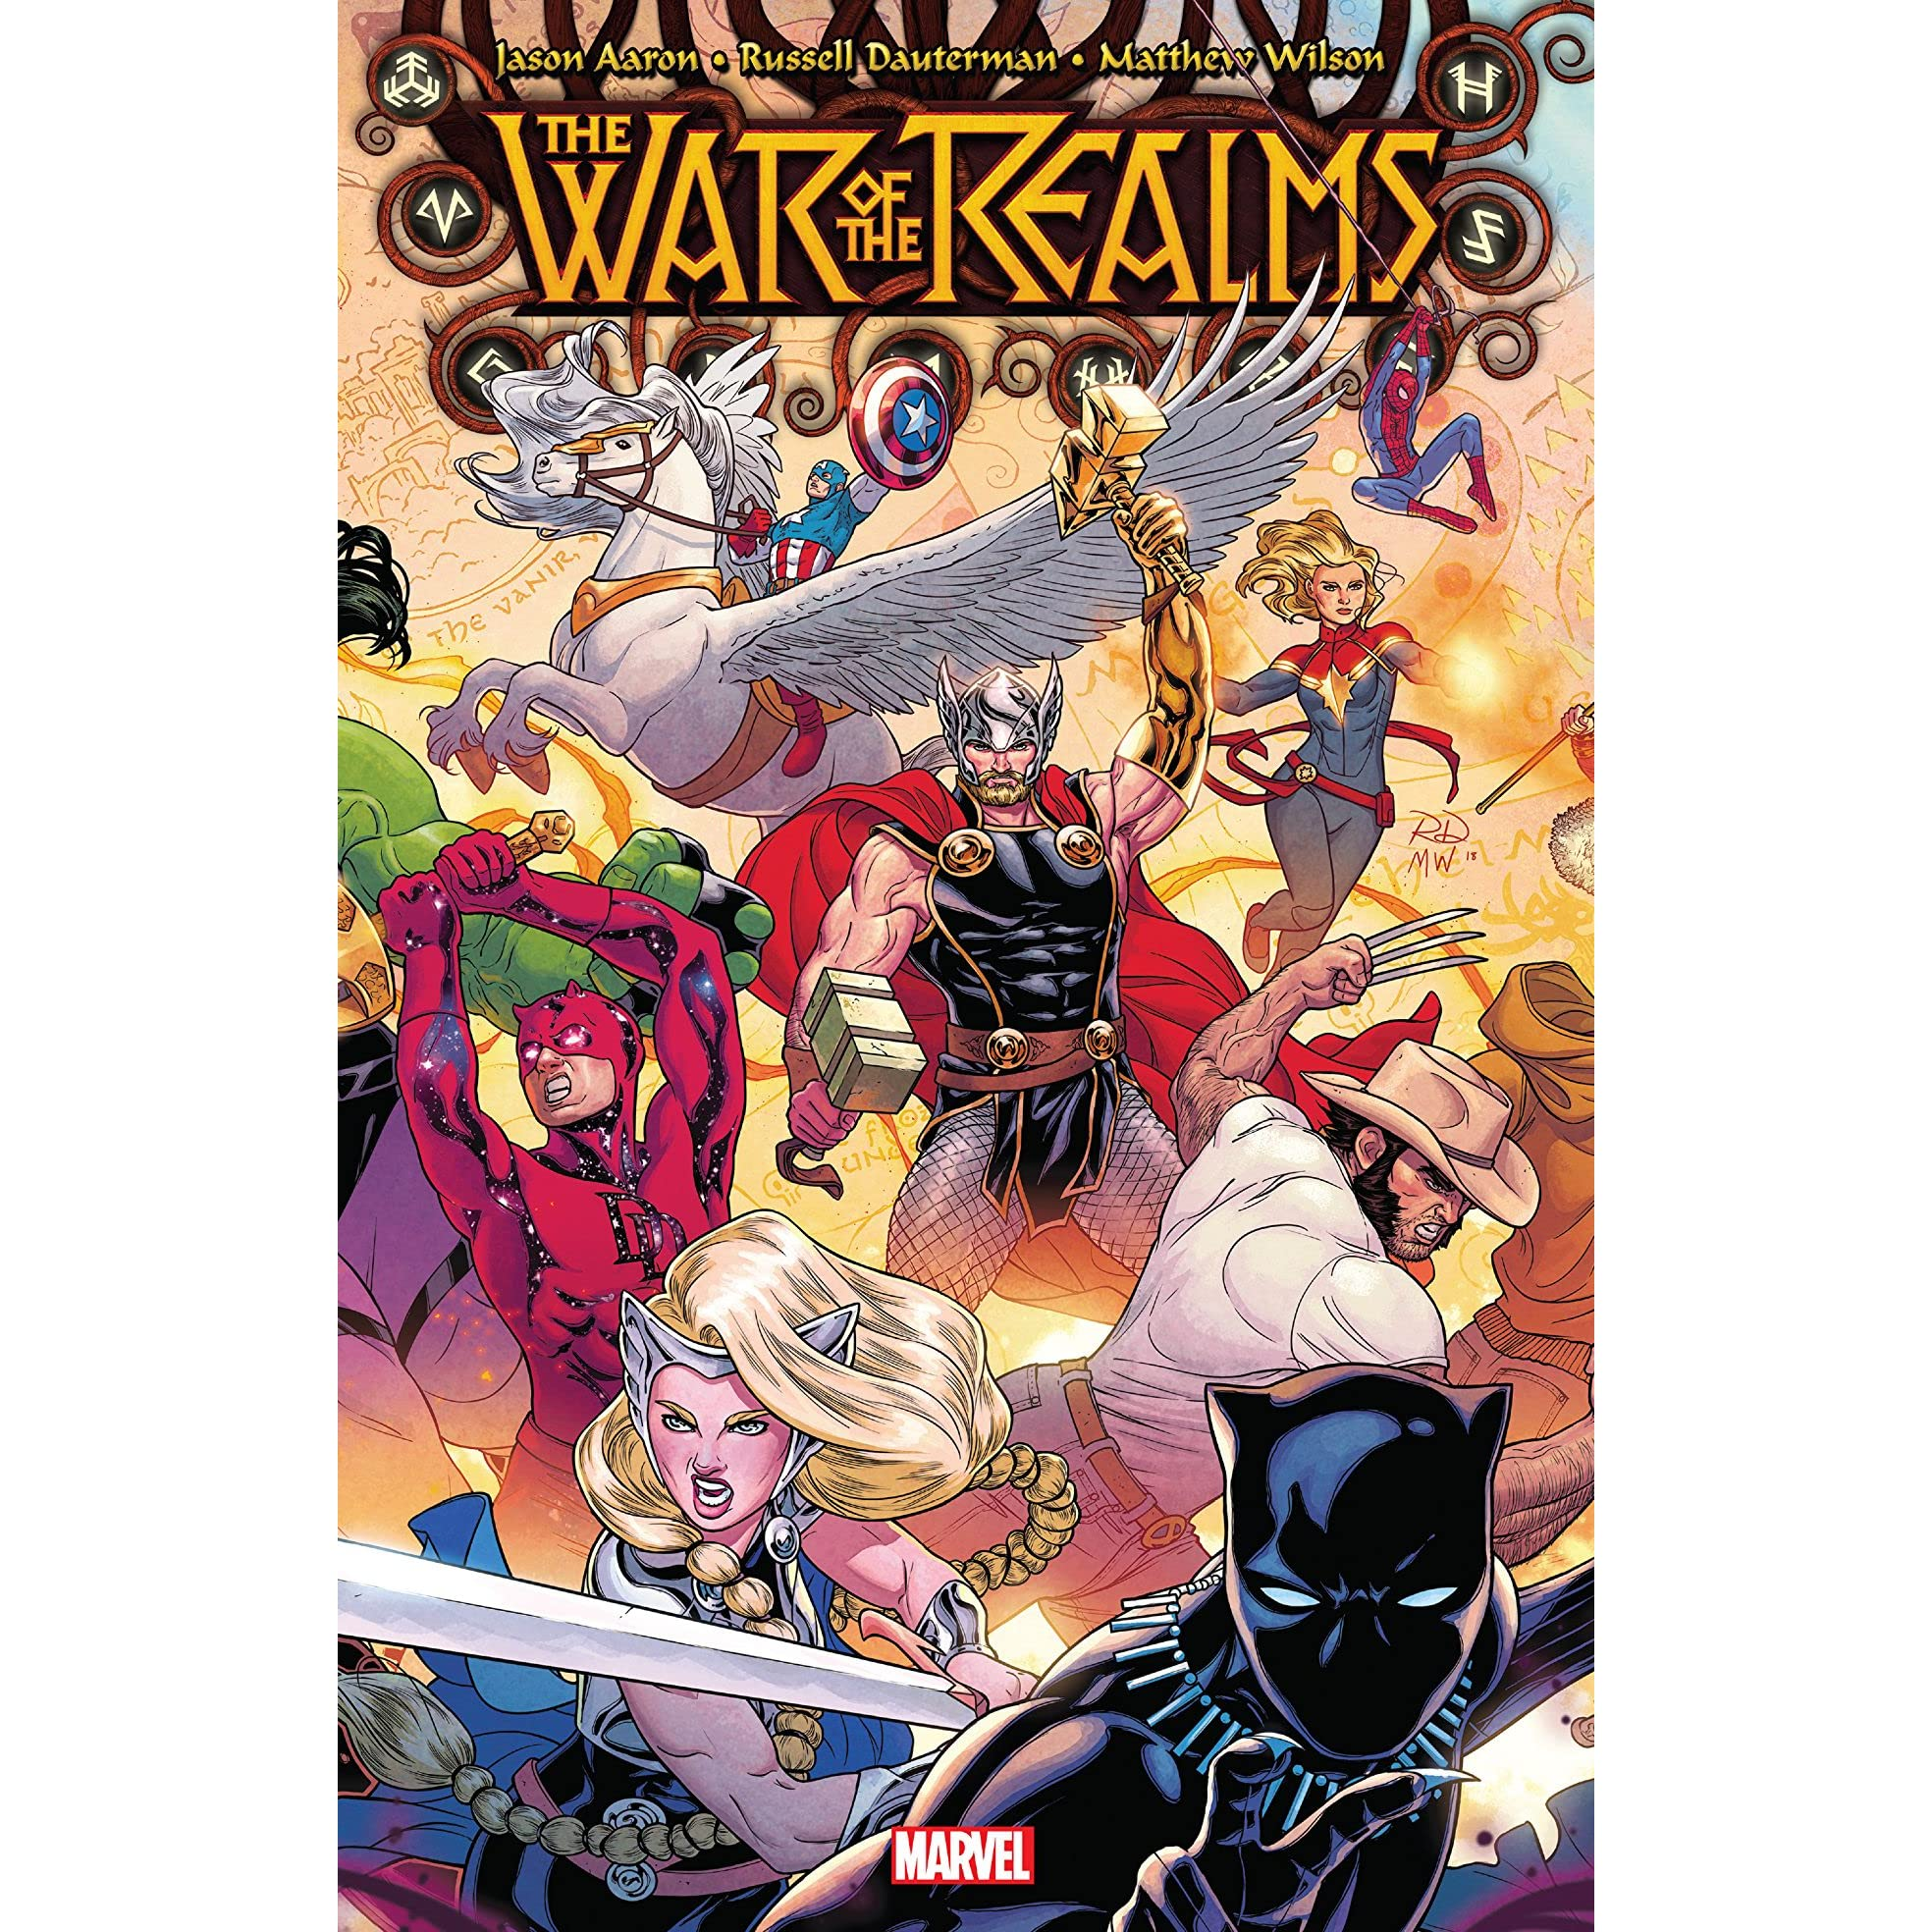 War of the Realms 1-6 Complete Comic Lot Run Set Thor Marvel Mixed Covers 2